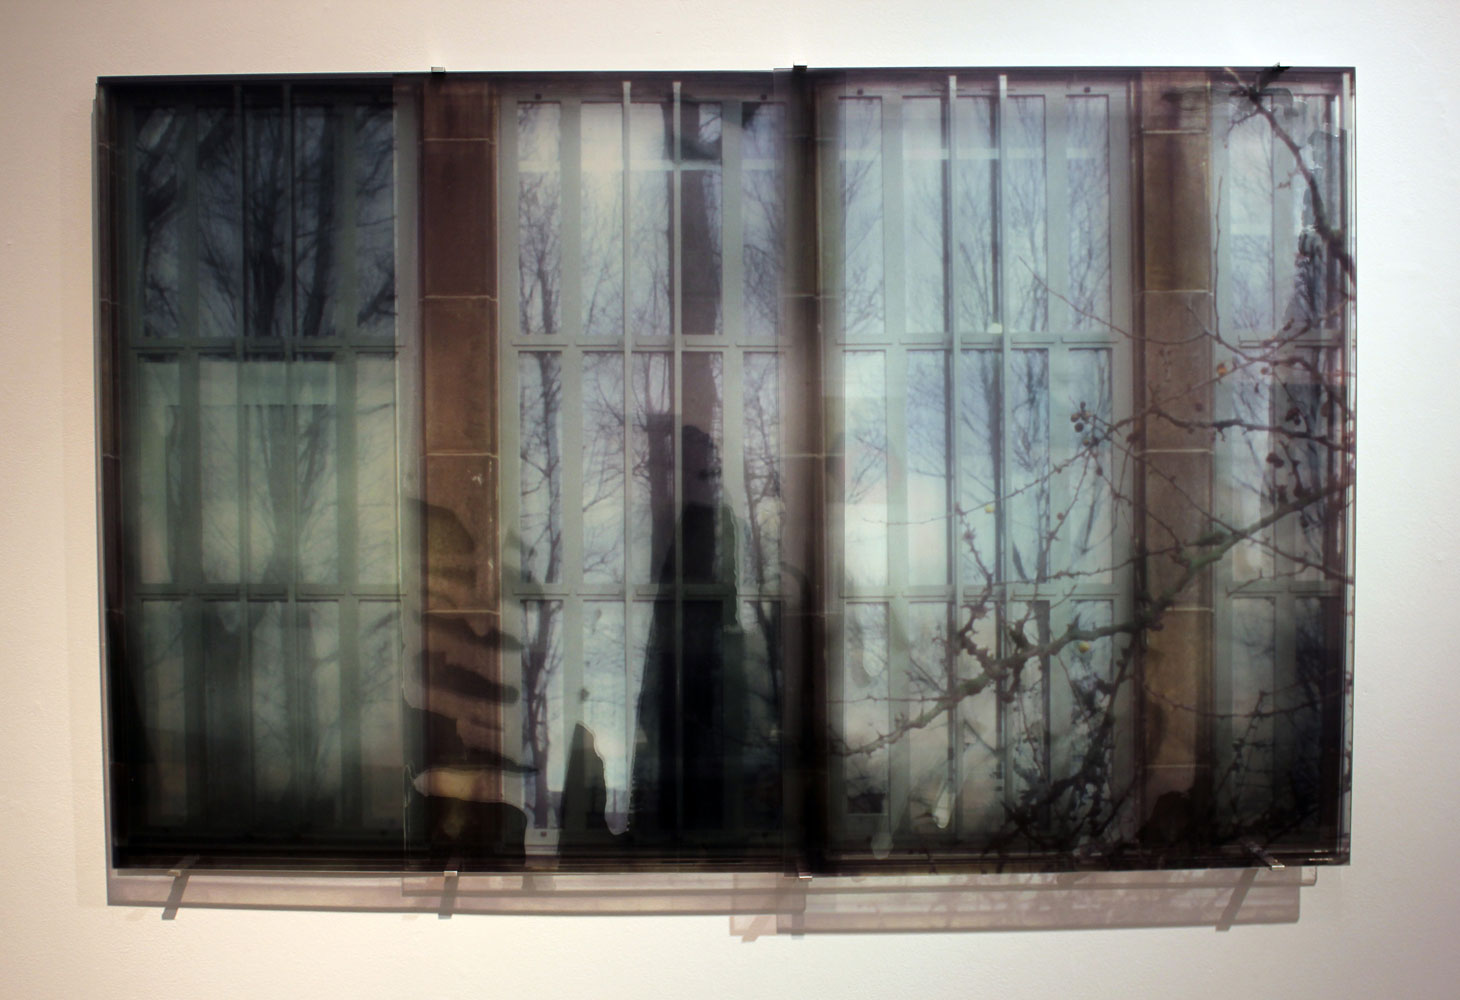 JANET LAURENCE    Membrane Diffusing History  2013 Duraclear, acrylic, mirror  160 x 100 cm